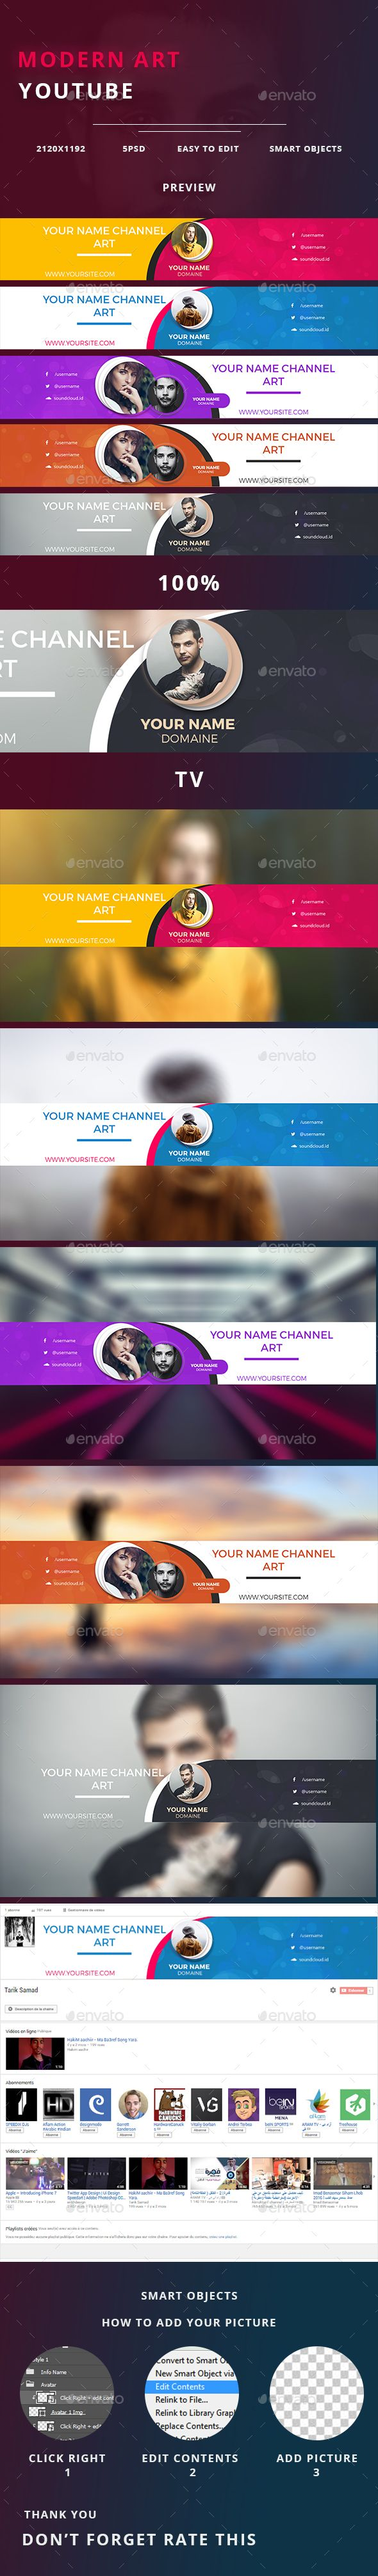 Modern Art Youtube Channel Backgrounds Templates Psd Youtube